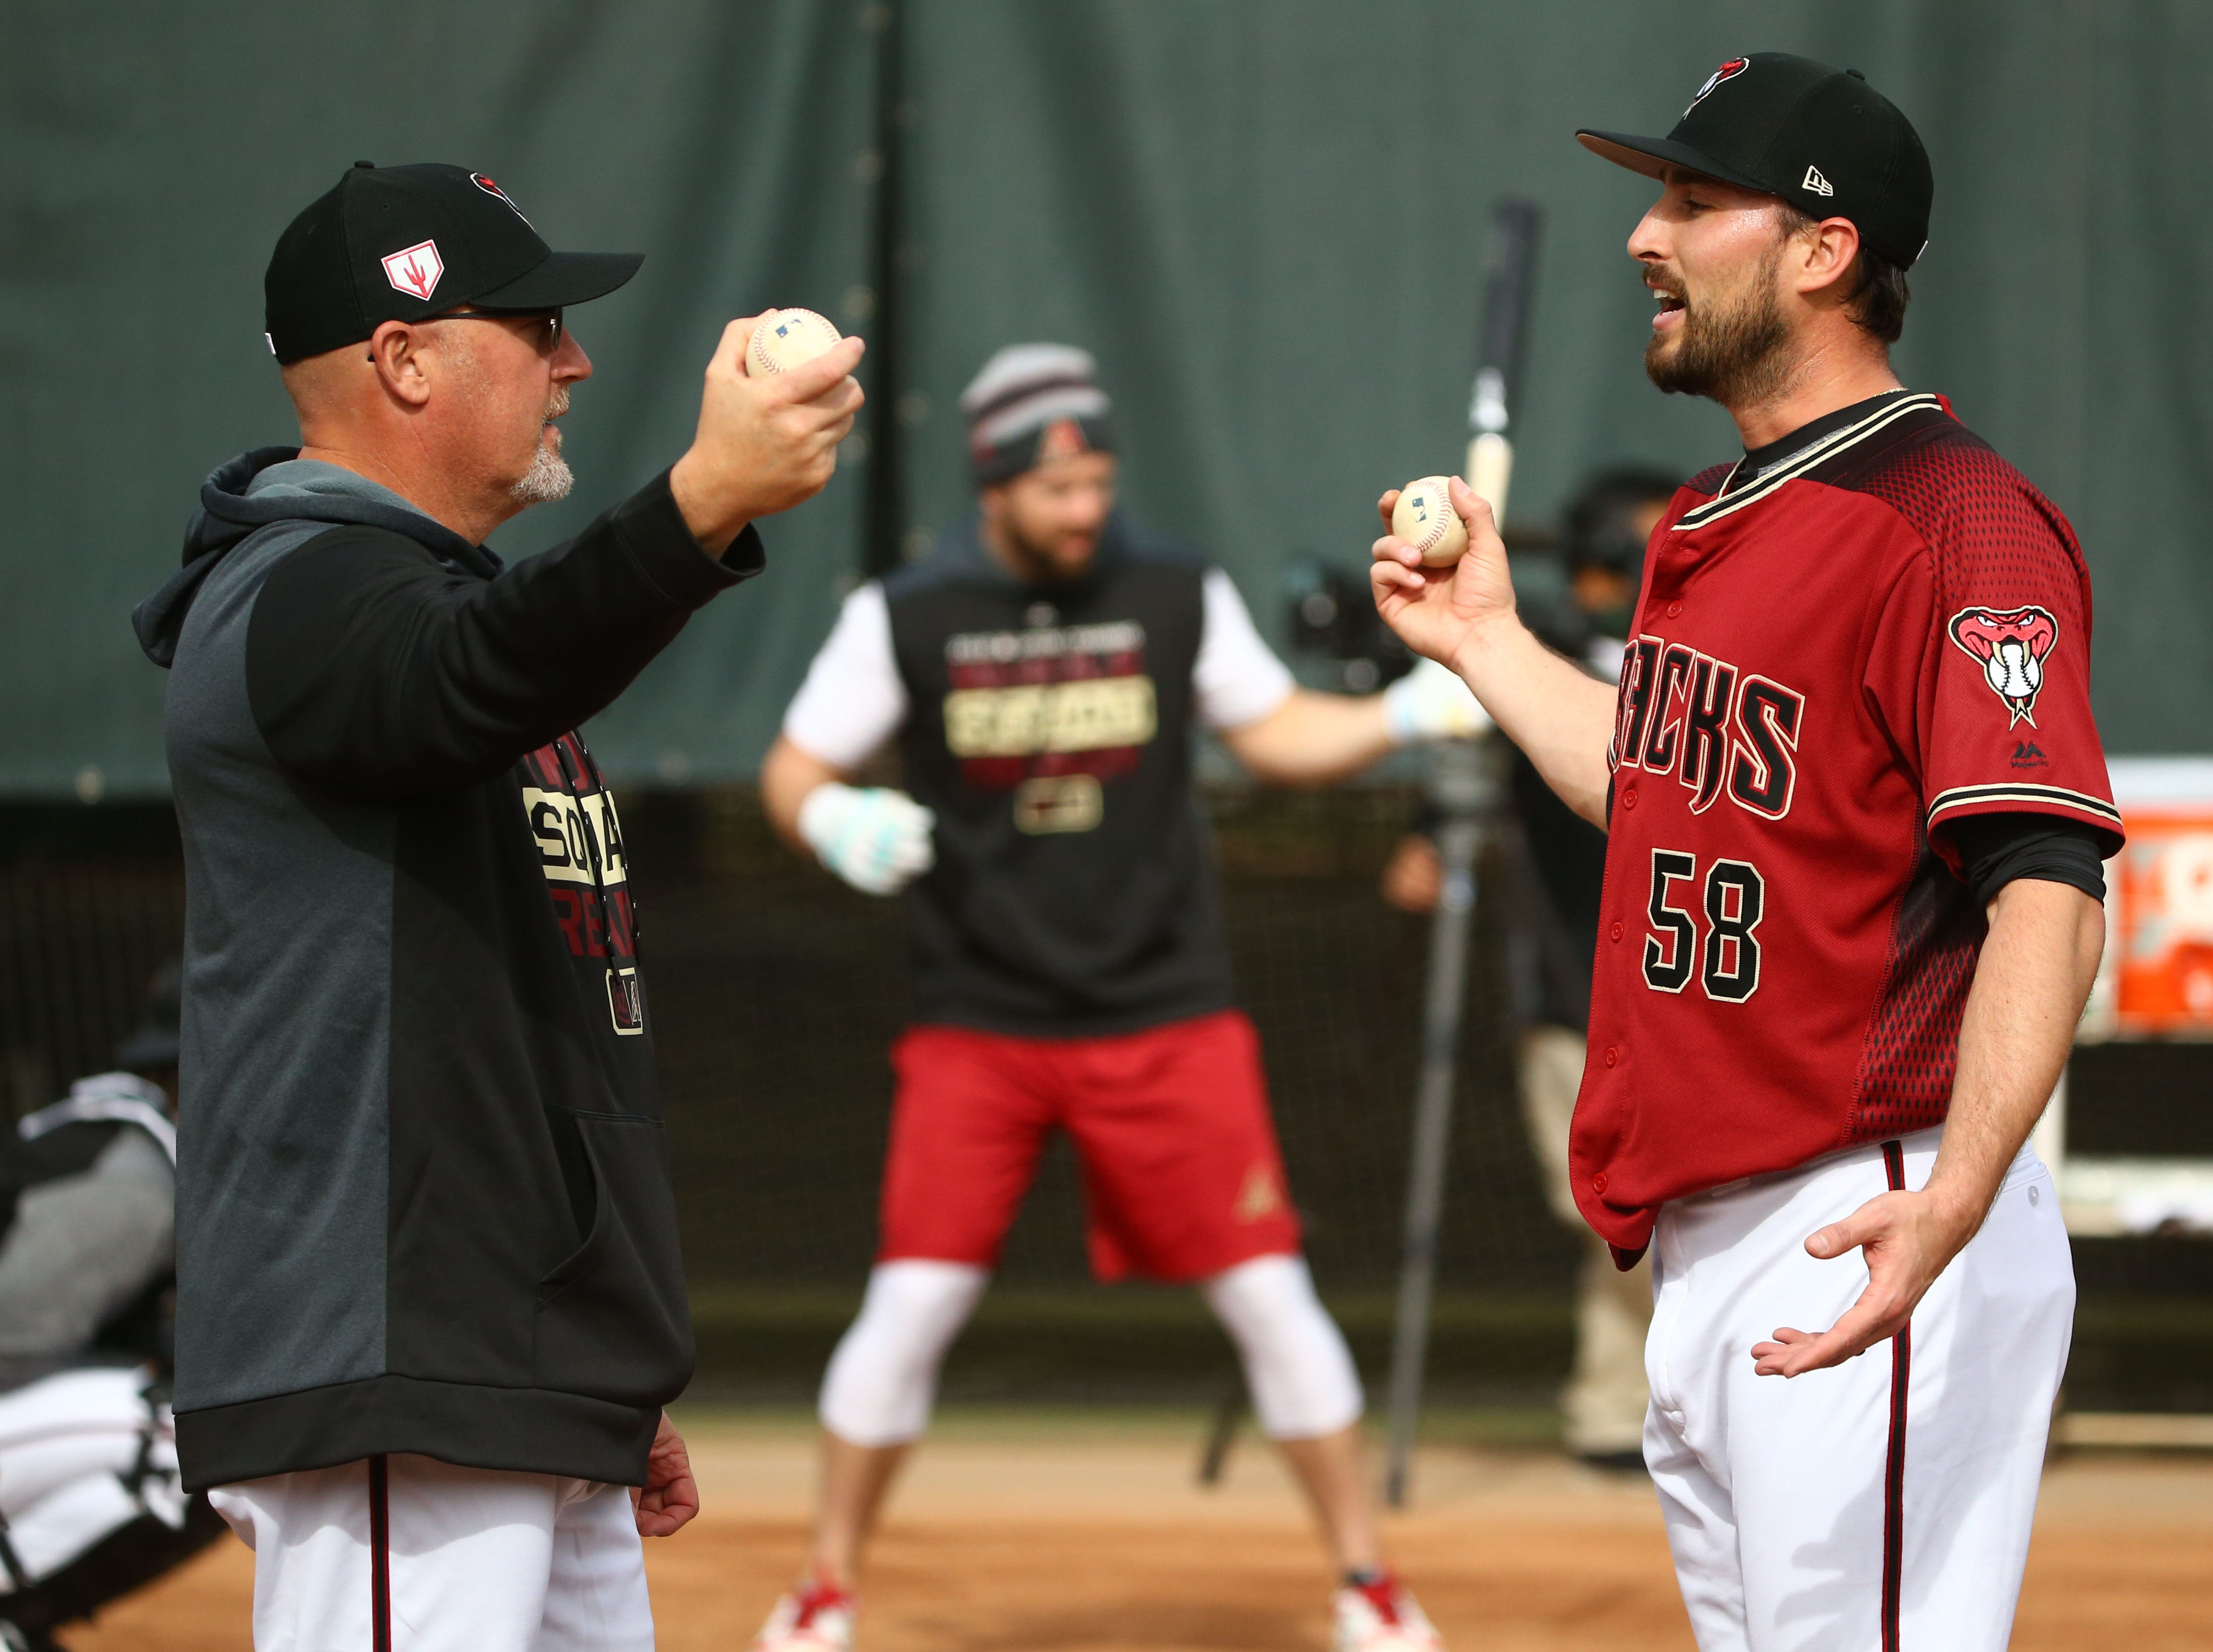 Arizona Diamondbacks pitcher Stefan Crichton takls to pitching coach Mike Butcher during the first day of spring training workouts on Feb. 13 at Salt River Fields in Scottsdale.